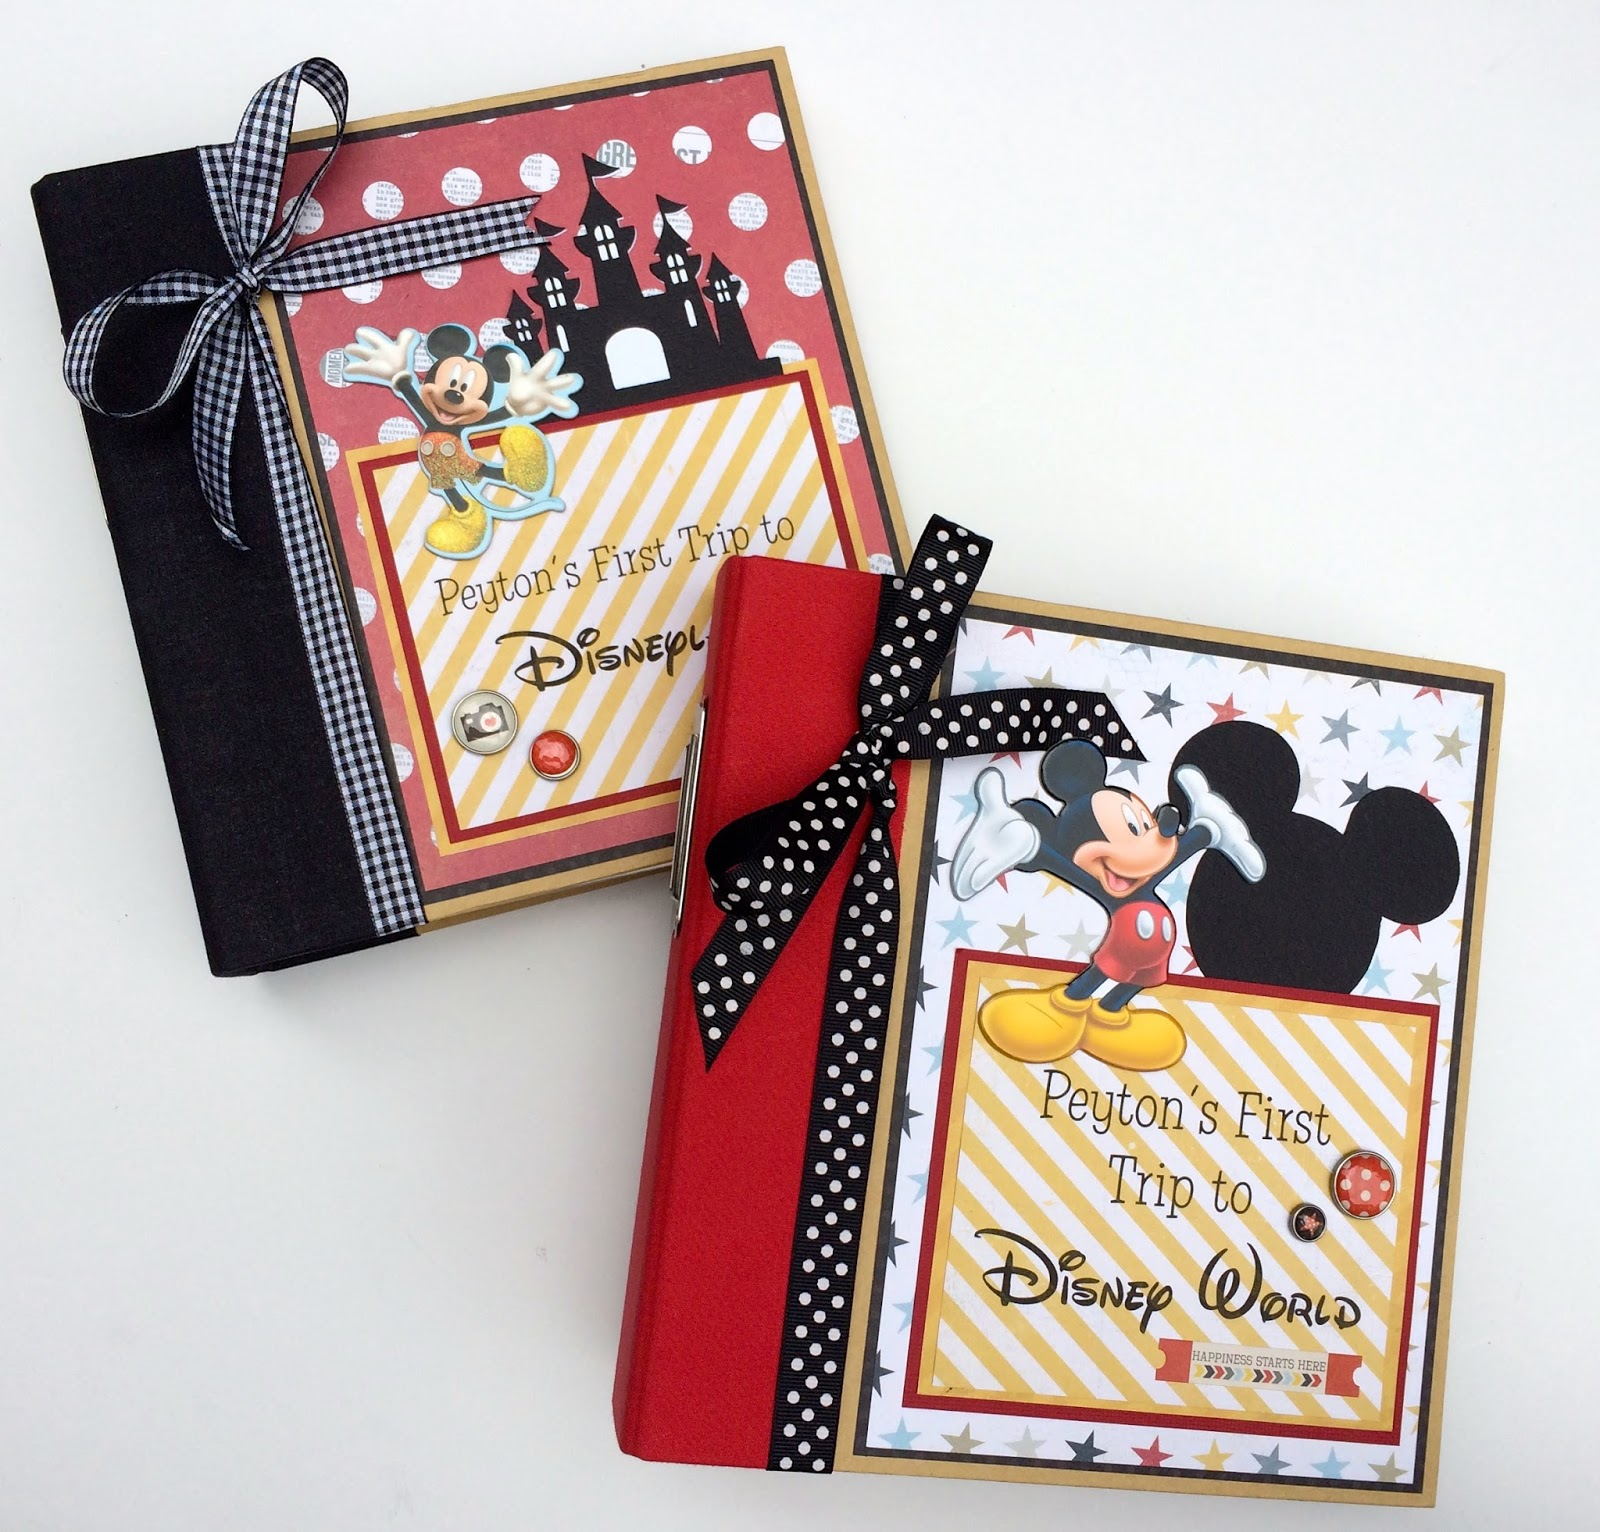 How to scrapbook disney - The Albums Will Hold At Least 30 35 Photos And Also Have Space For Notes From Your Trip They Are The Perfect Size To Carry With You To Show Family